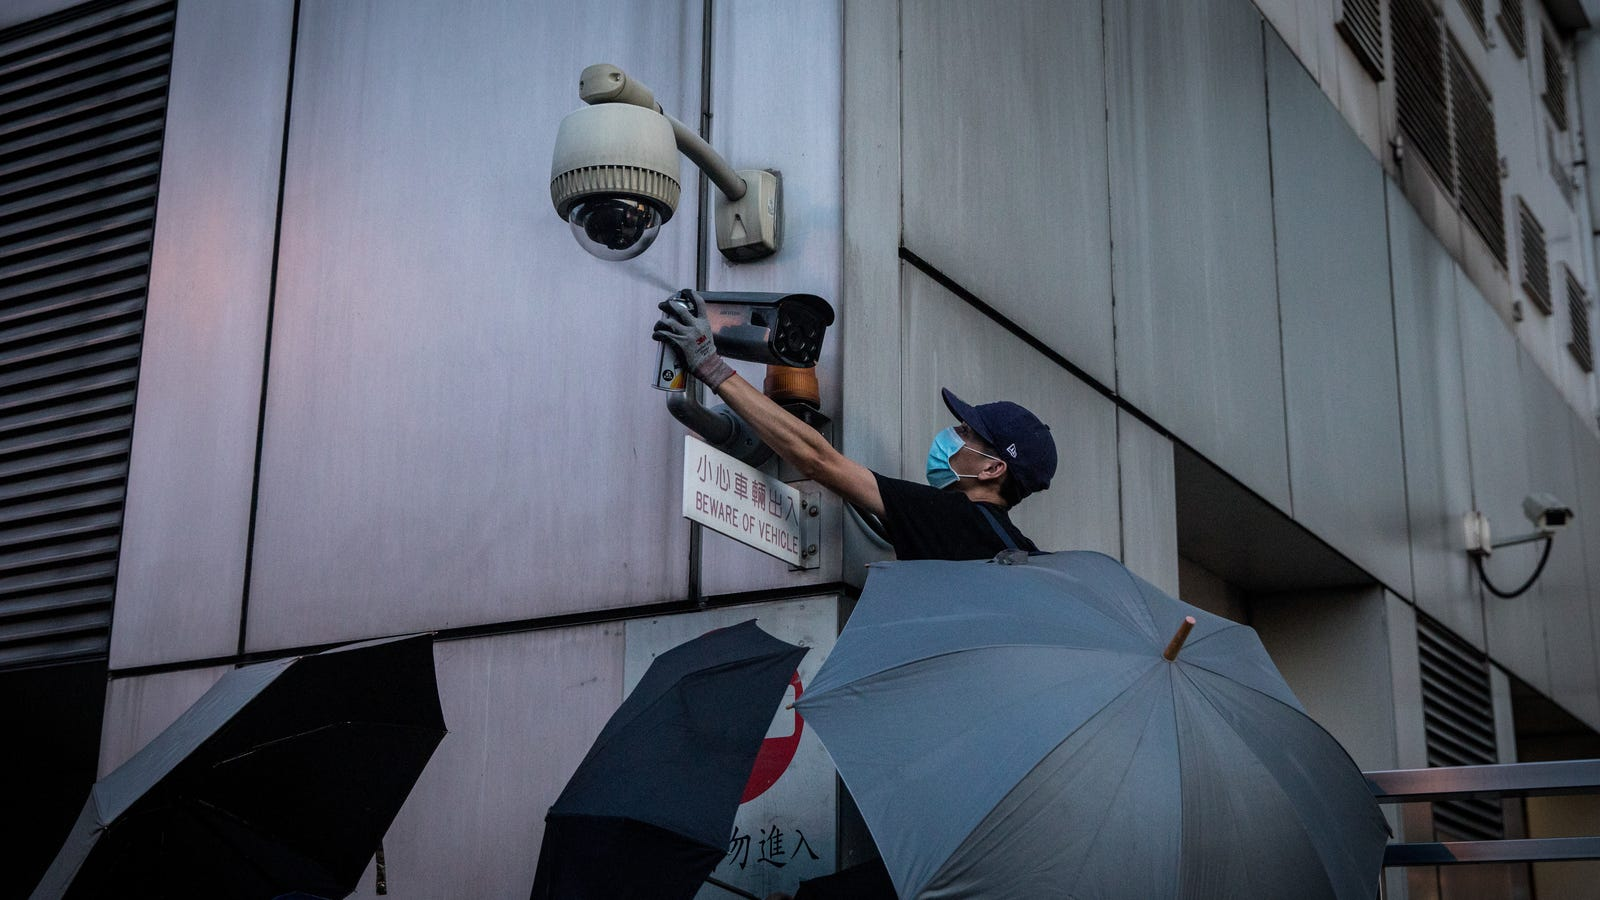 How Hong Kong's Protestors Are Hindering (and Hijacking) the Tools of Surveillance